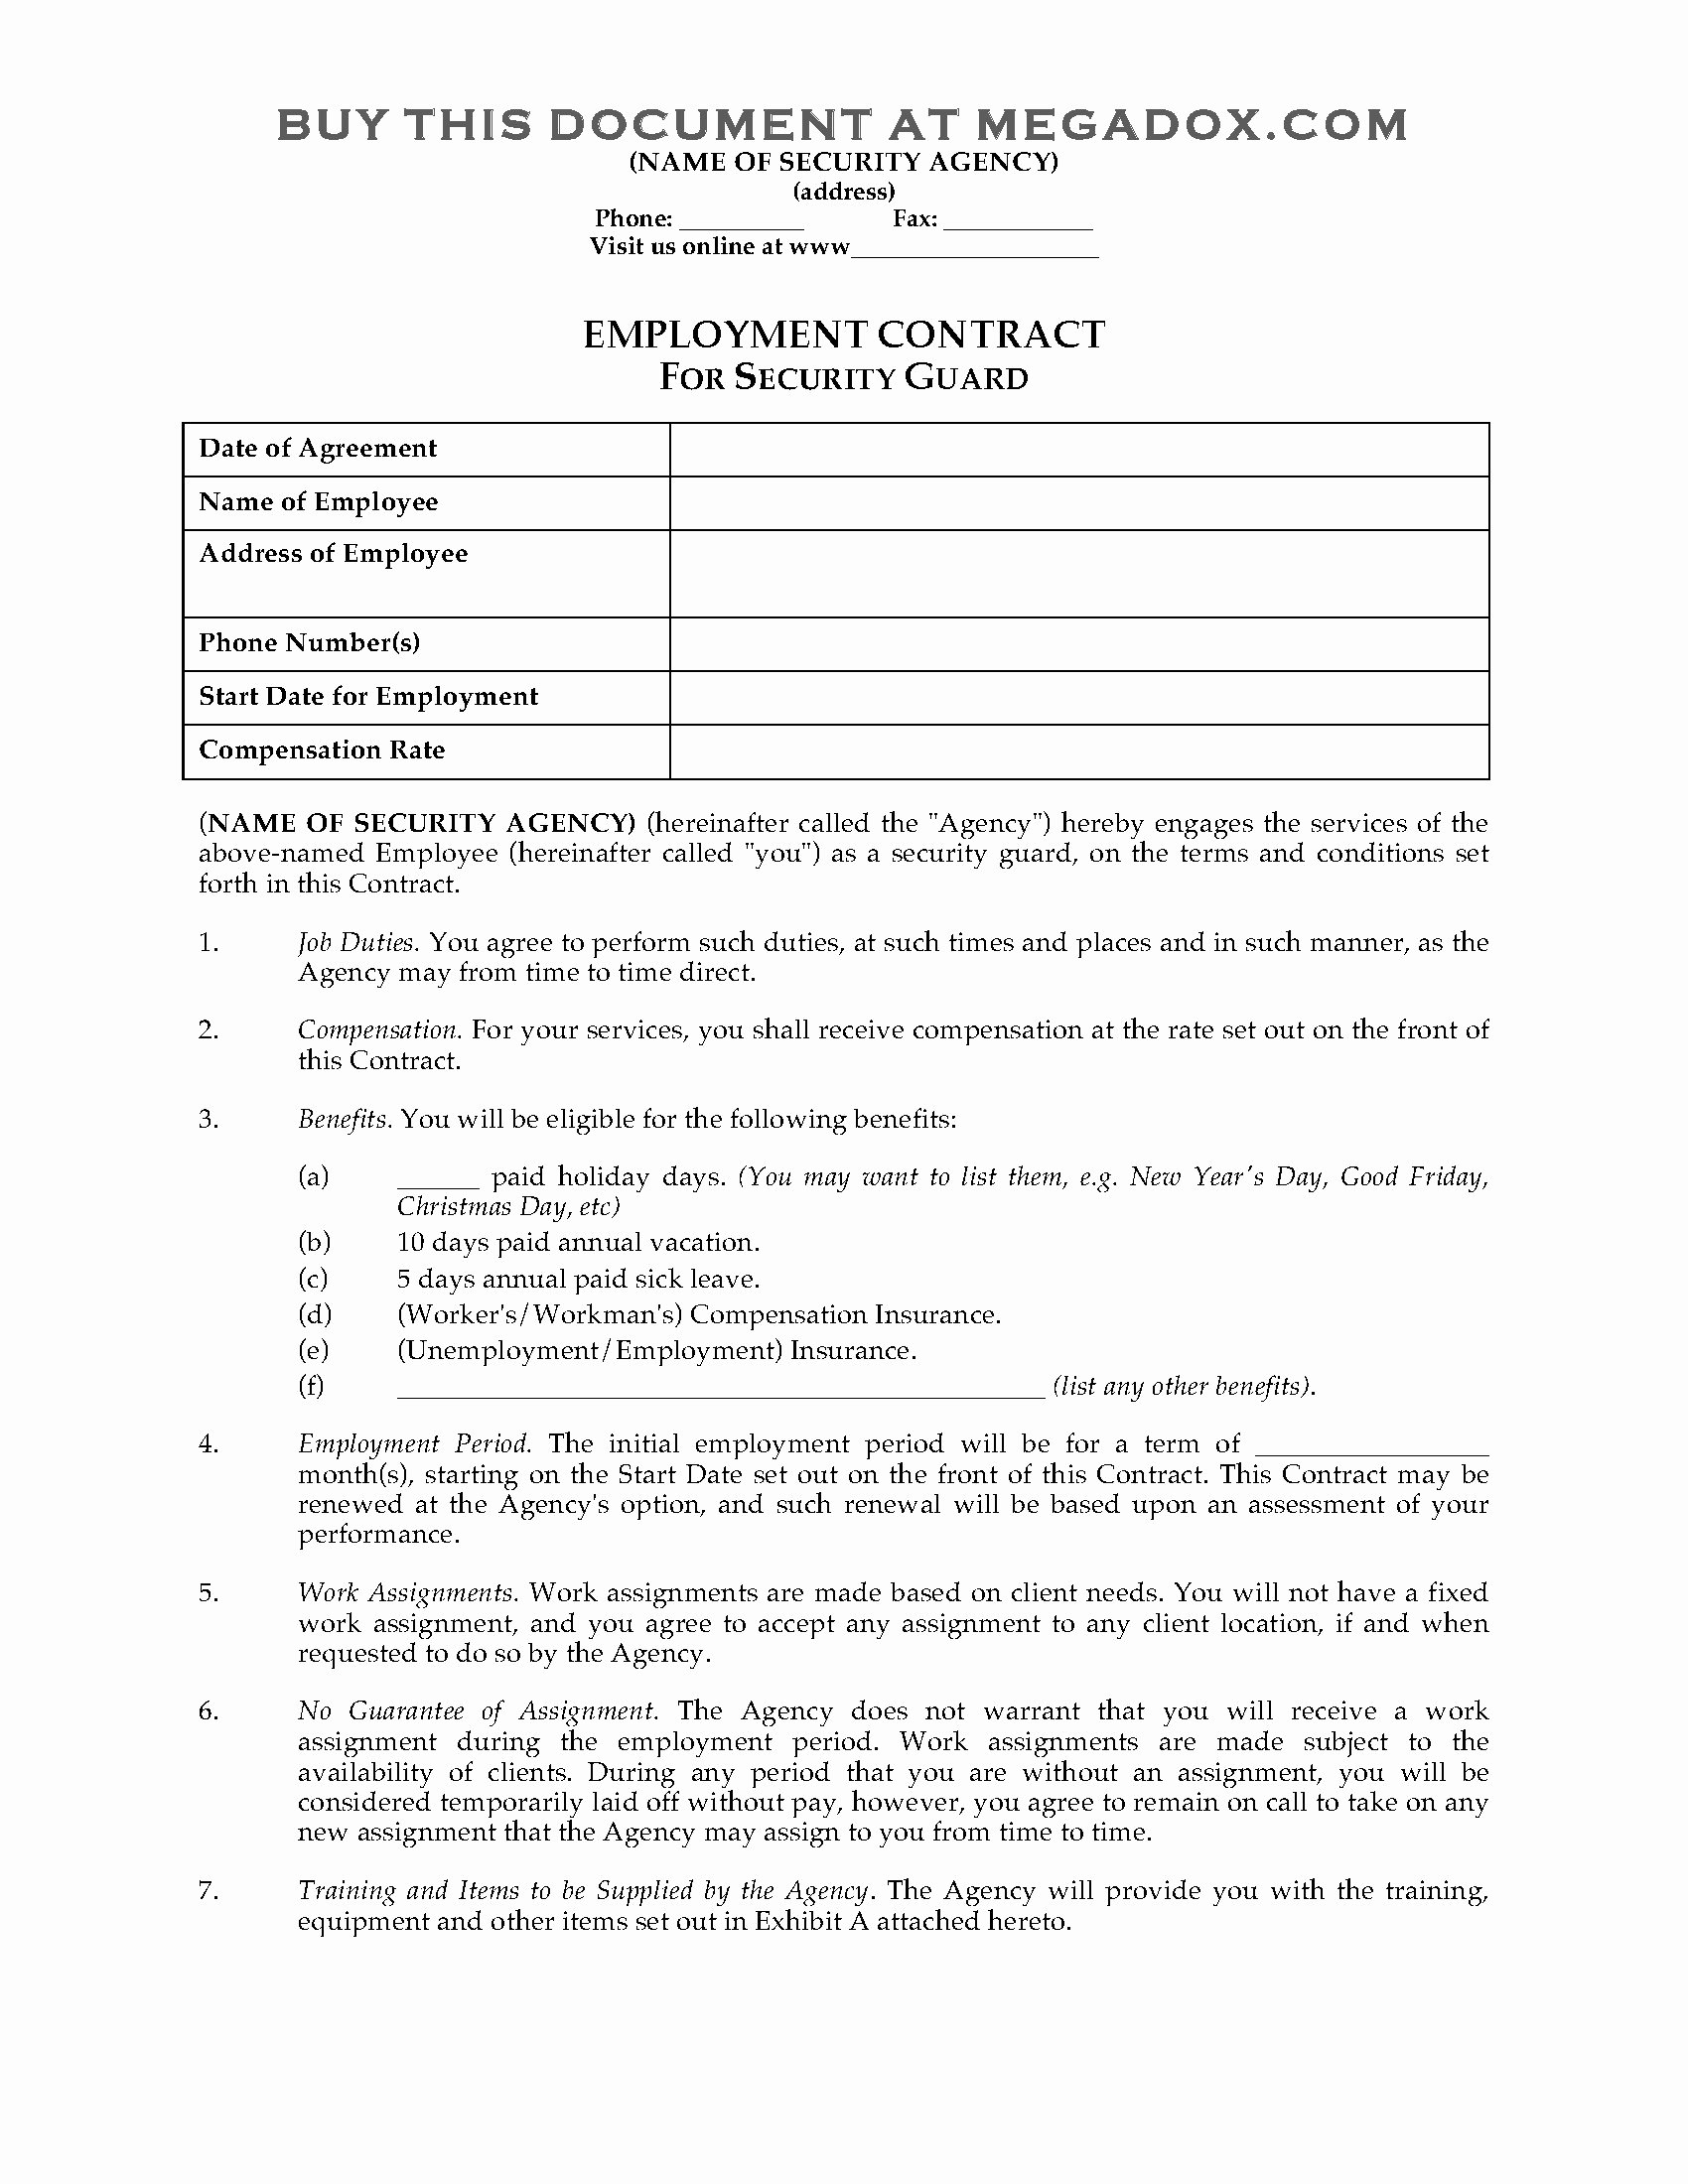 Film Producer Agreement Template Best Of Adult Production Agreement Collection solutions